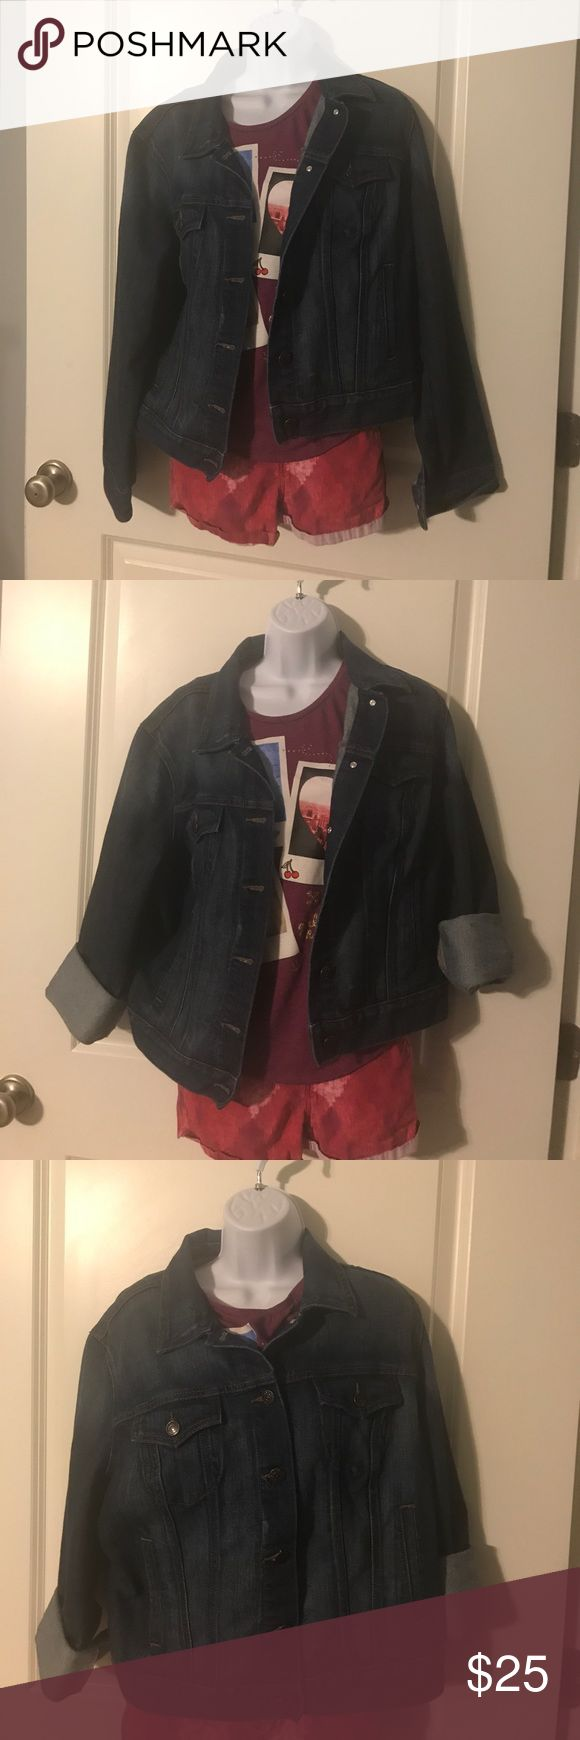 Old Navy jean jacket Super cute Old Navy jean jacket. Like new!! Old Navy Jackets & Coats Jean Jackets